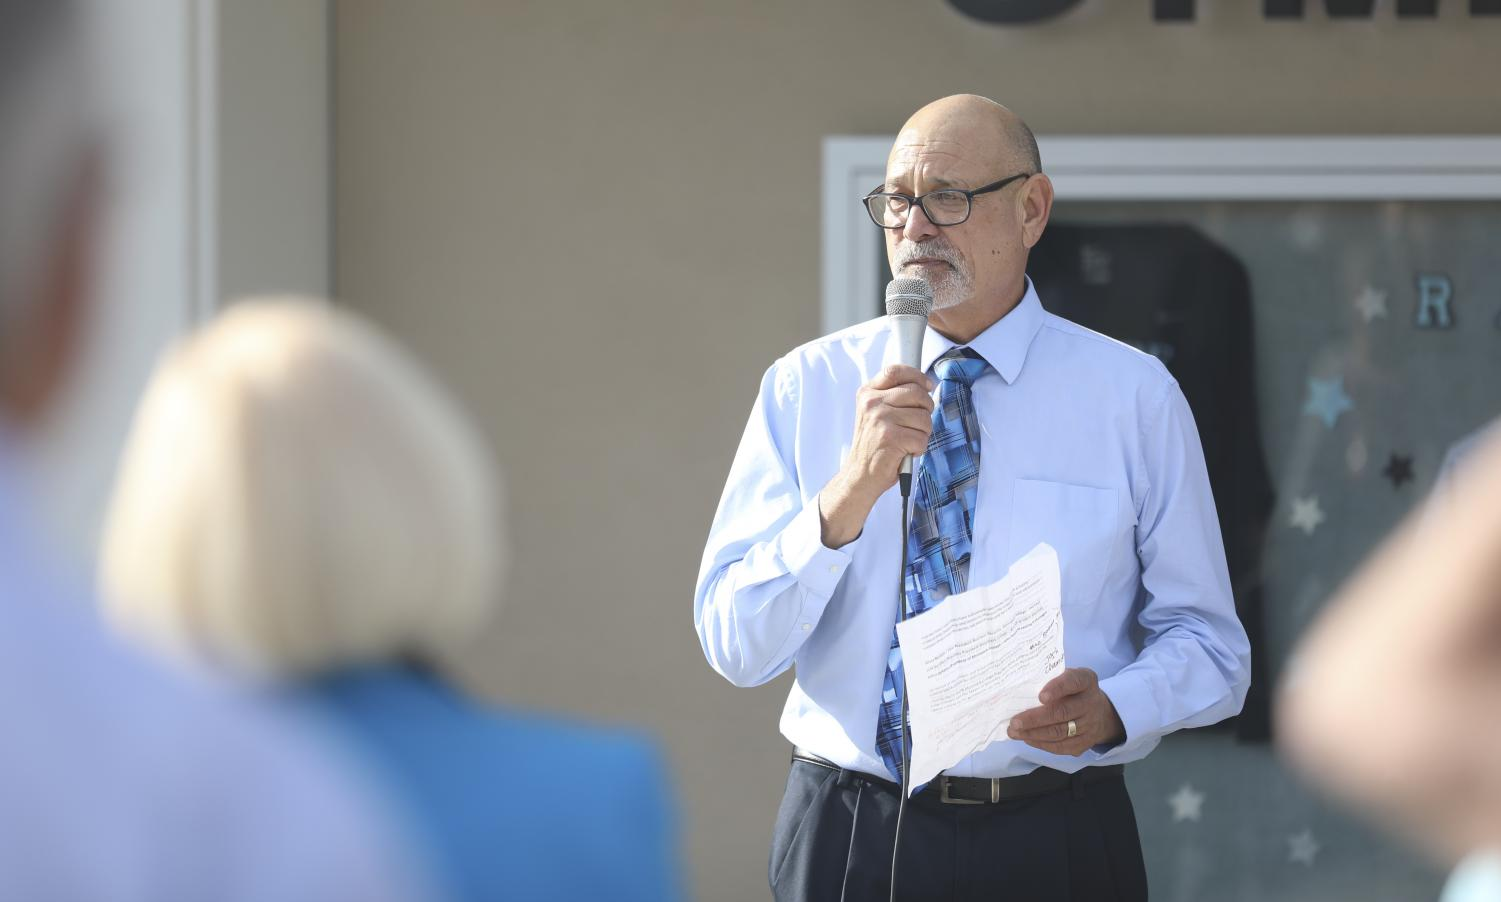 Vance Manakas, Moorpark College's Athletic Director, speaks to guests attending the grand reopening of Raider Pavilion at Moorpark College on Saturday, Jan. 25.